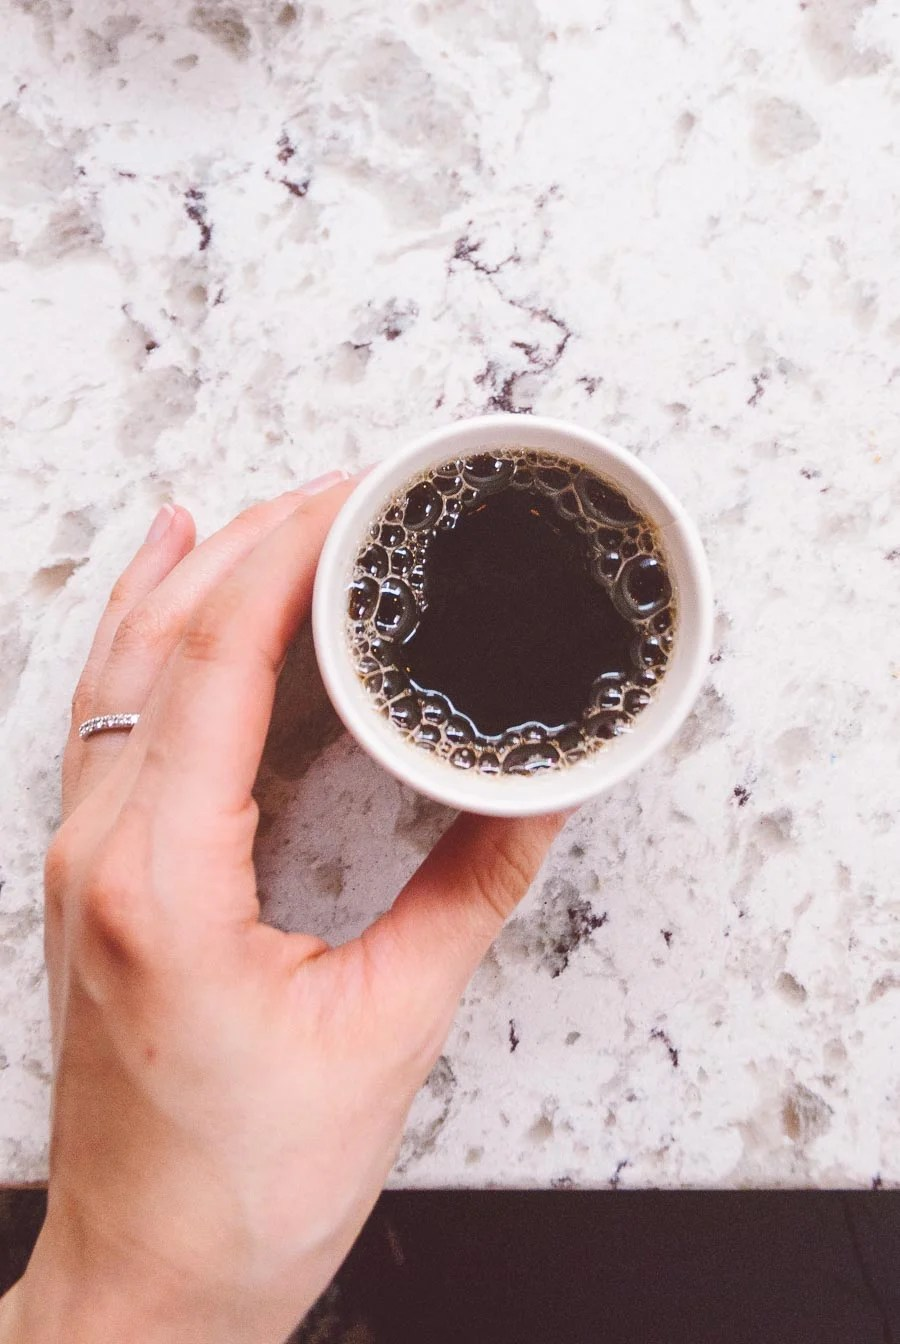 Overhead shot of a cup of coffee on a white marble table with a hand holding the cup.